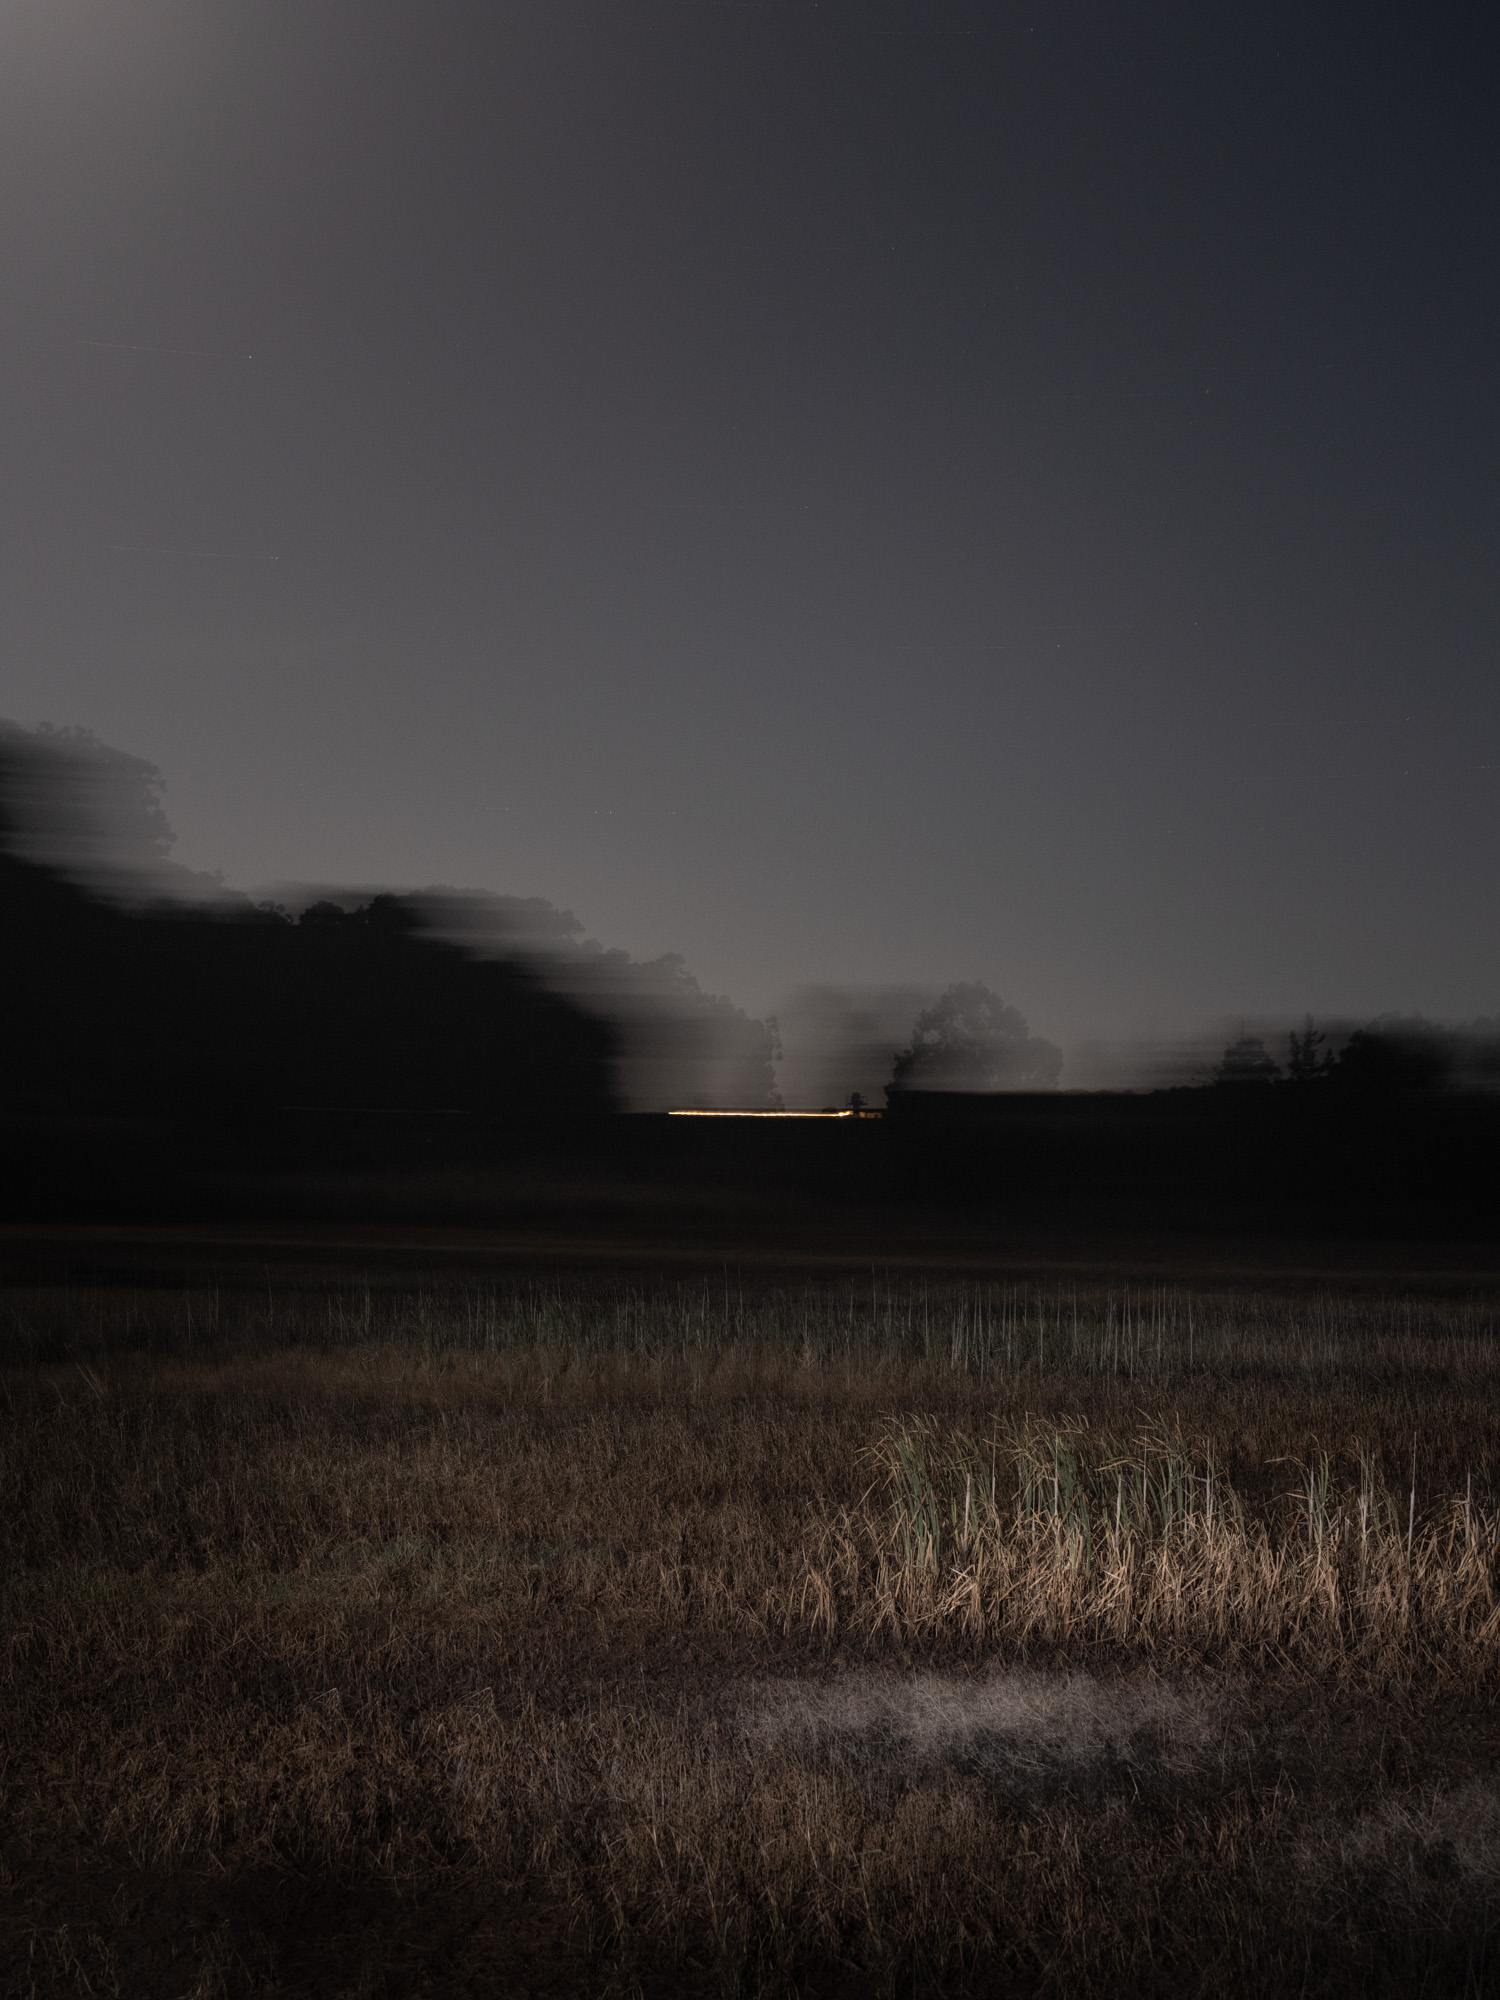 A landscape image of a field at night with light.